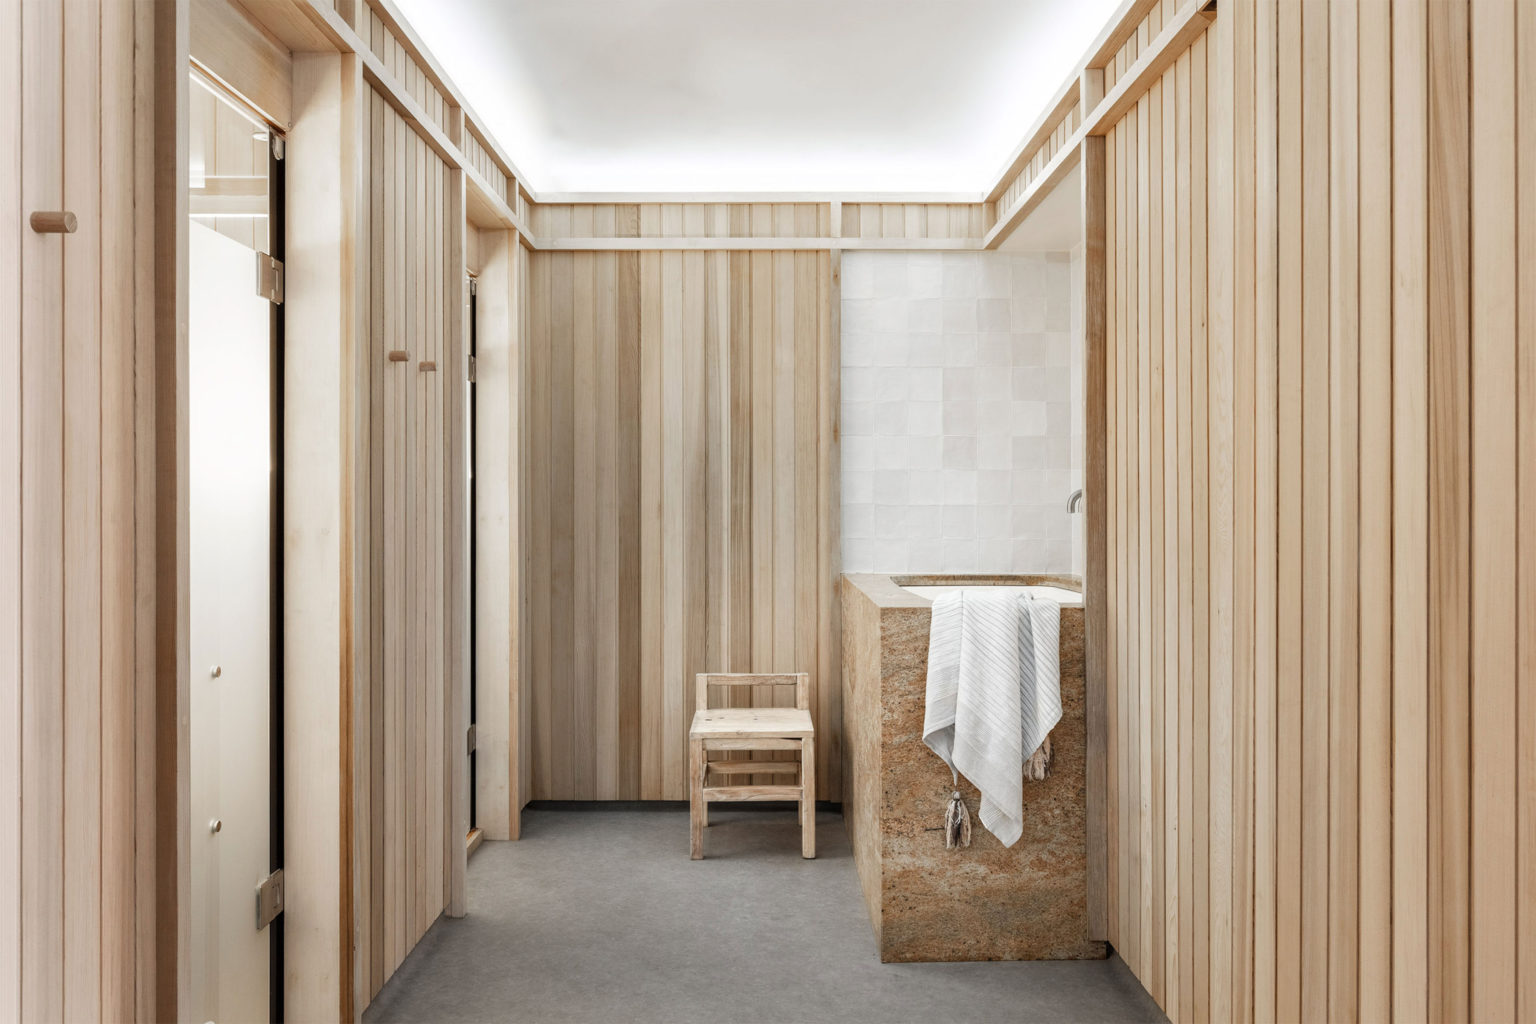 SHELTER wellness centre in Sydney | Gym and spa design | Softer Volumes